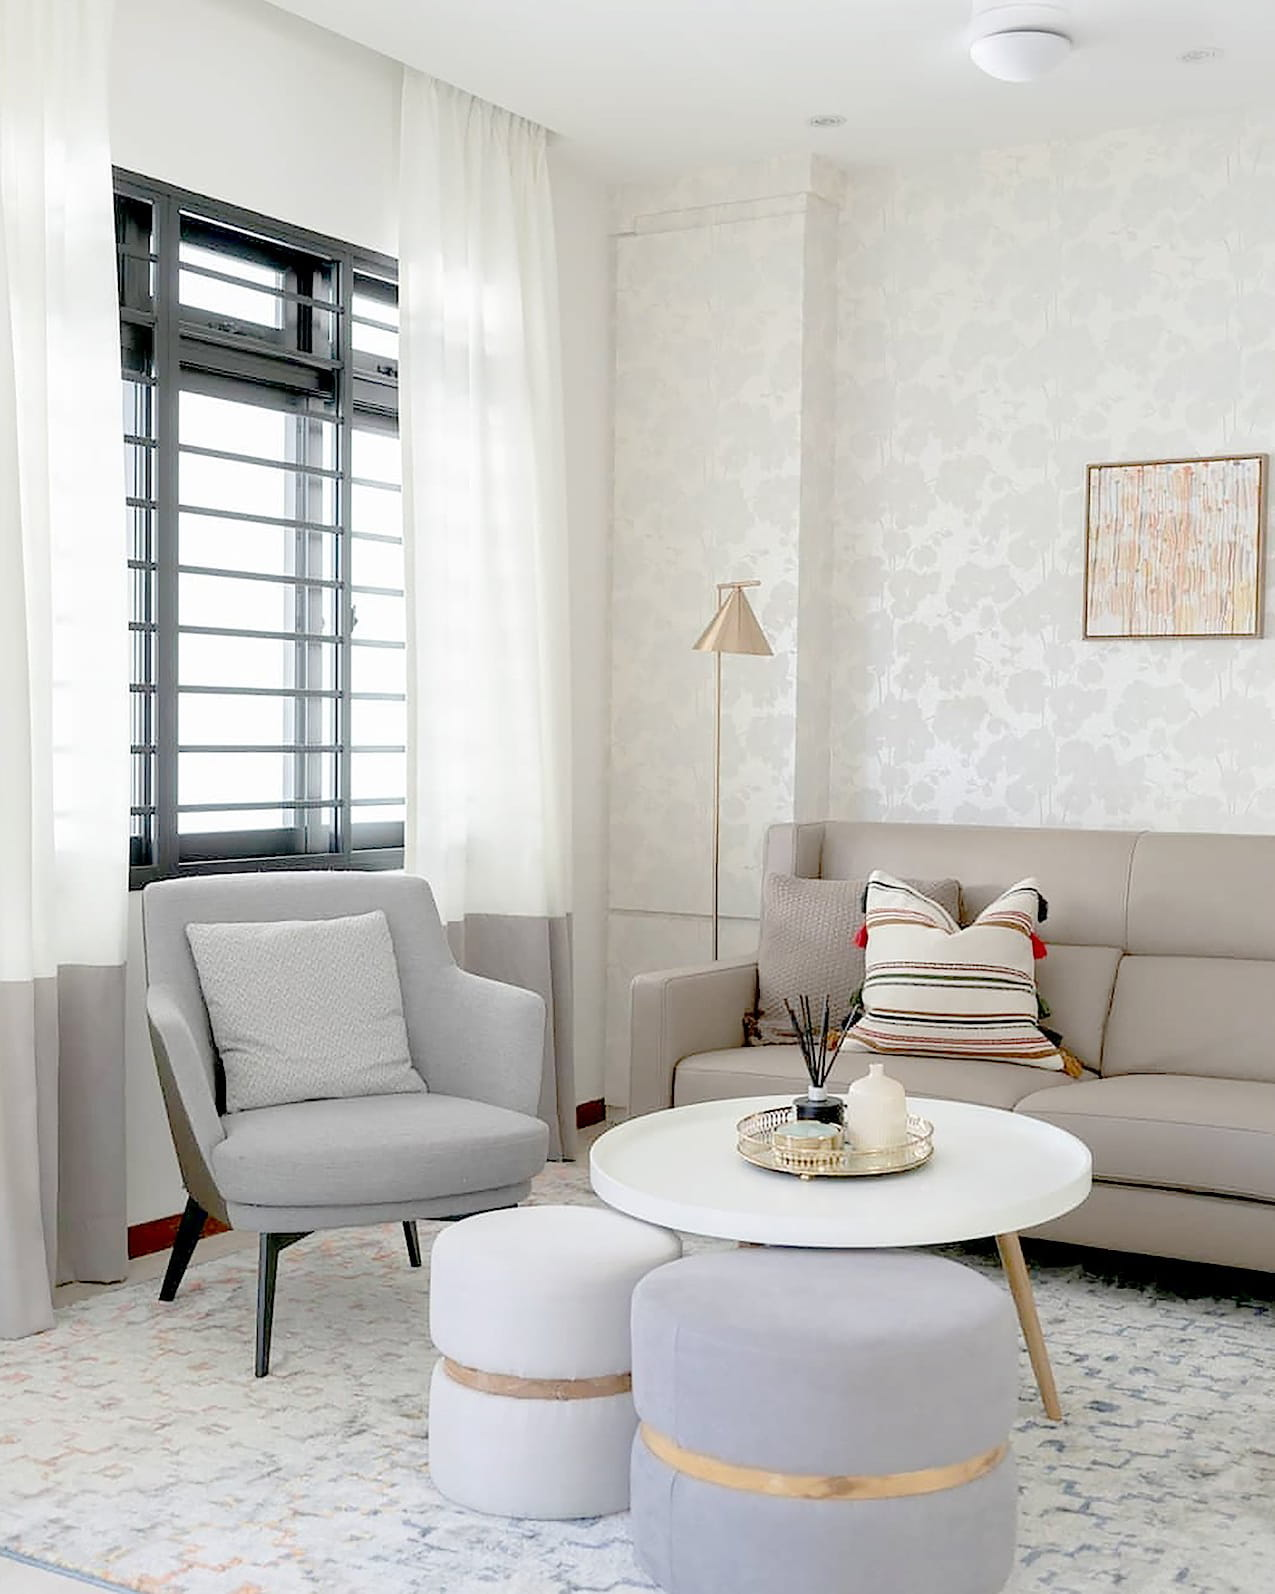 Living Room with Accent Loungers - Comfort Furniture